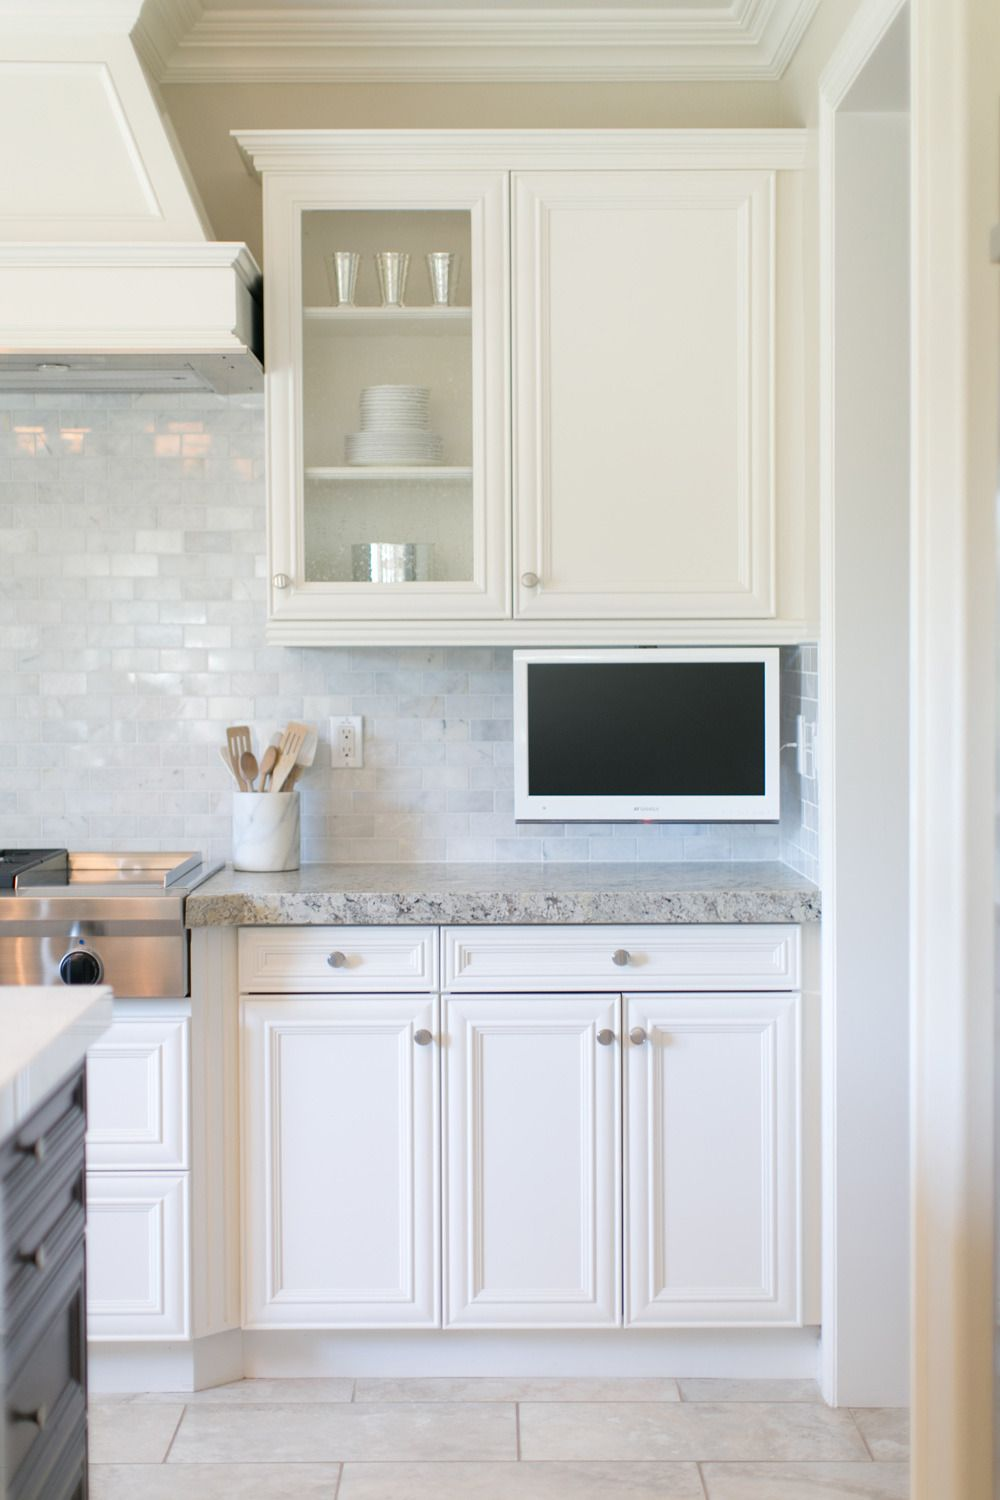 Peek Inside This Steal Worthy Los Angeles Home Dream Backyard Kitchen Countertops Tv In Kitchen Countertops